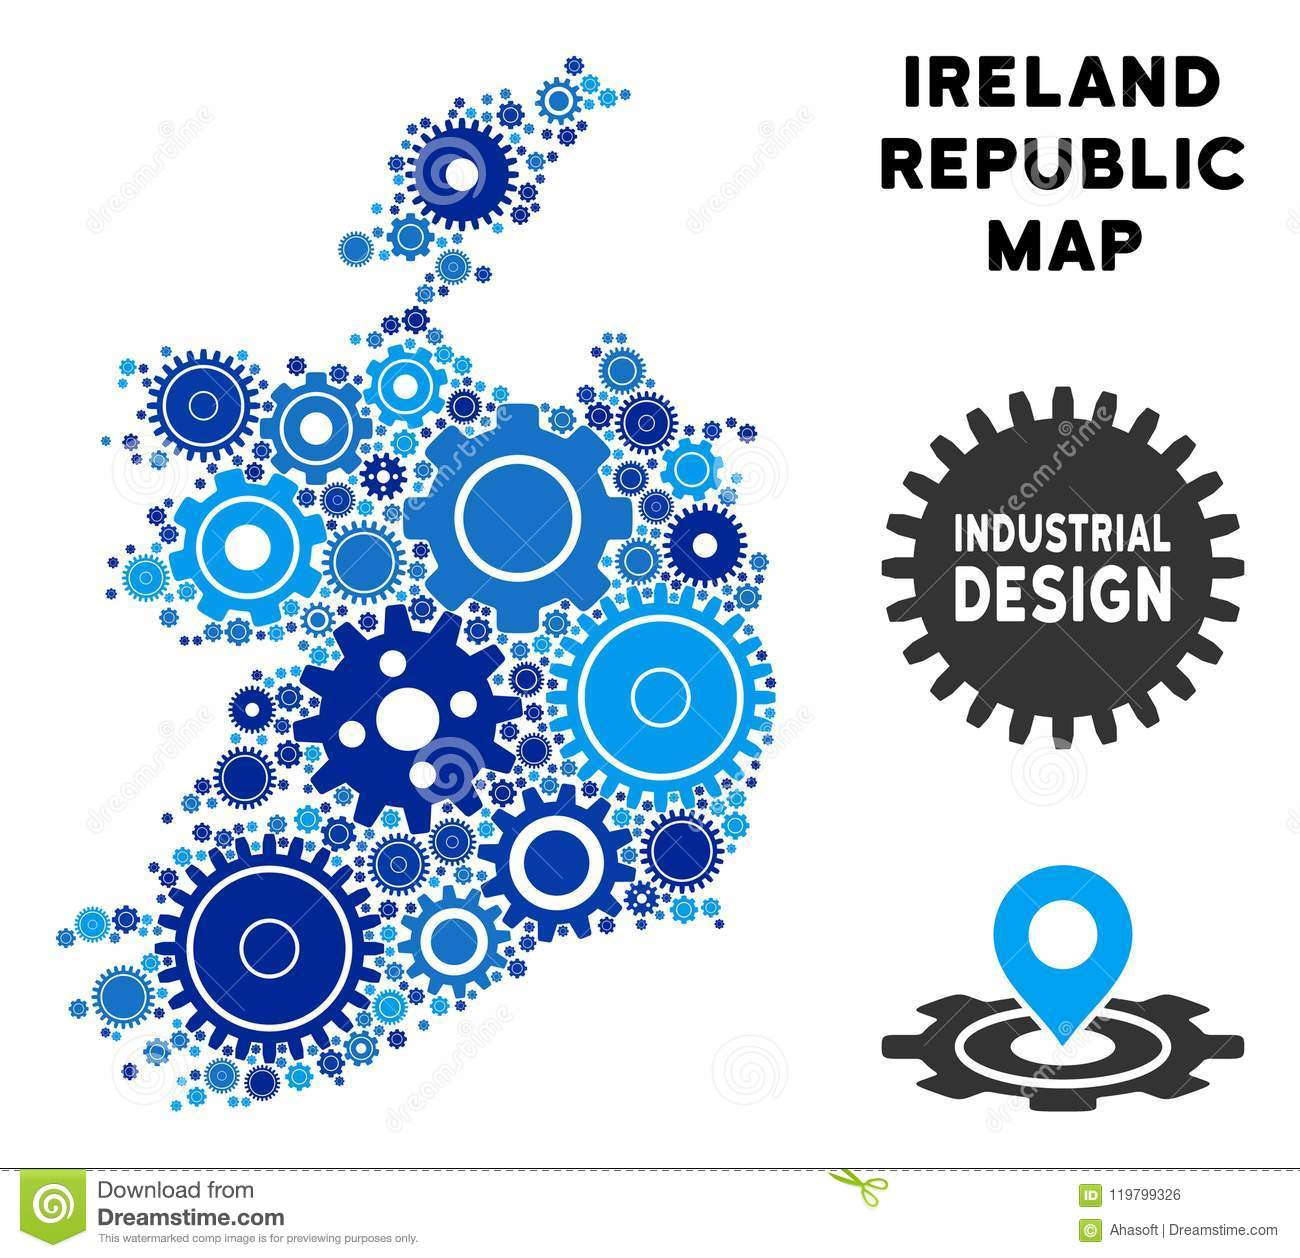 Mosaic Ireland Republic Map Of Gears Stock Vector - Illustration of on natural resources found in ireland, france map great britain ireland, map s and n ireland, tourism ireland,